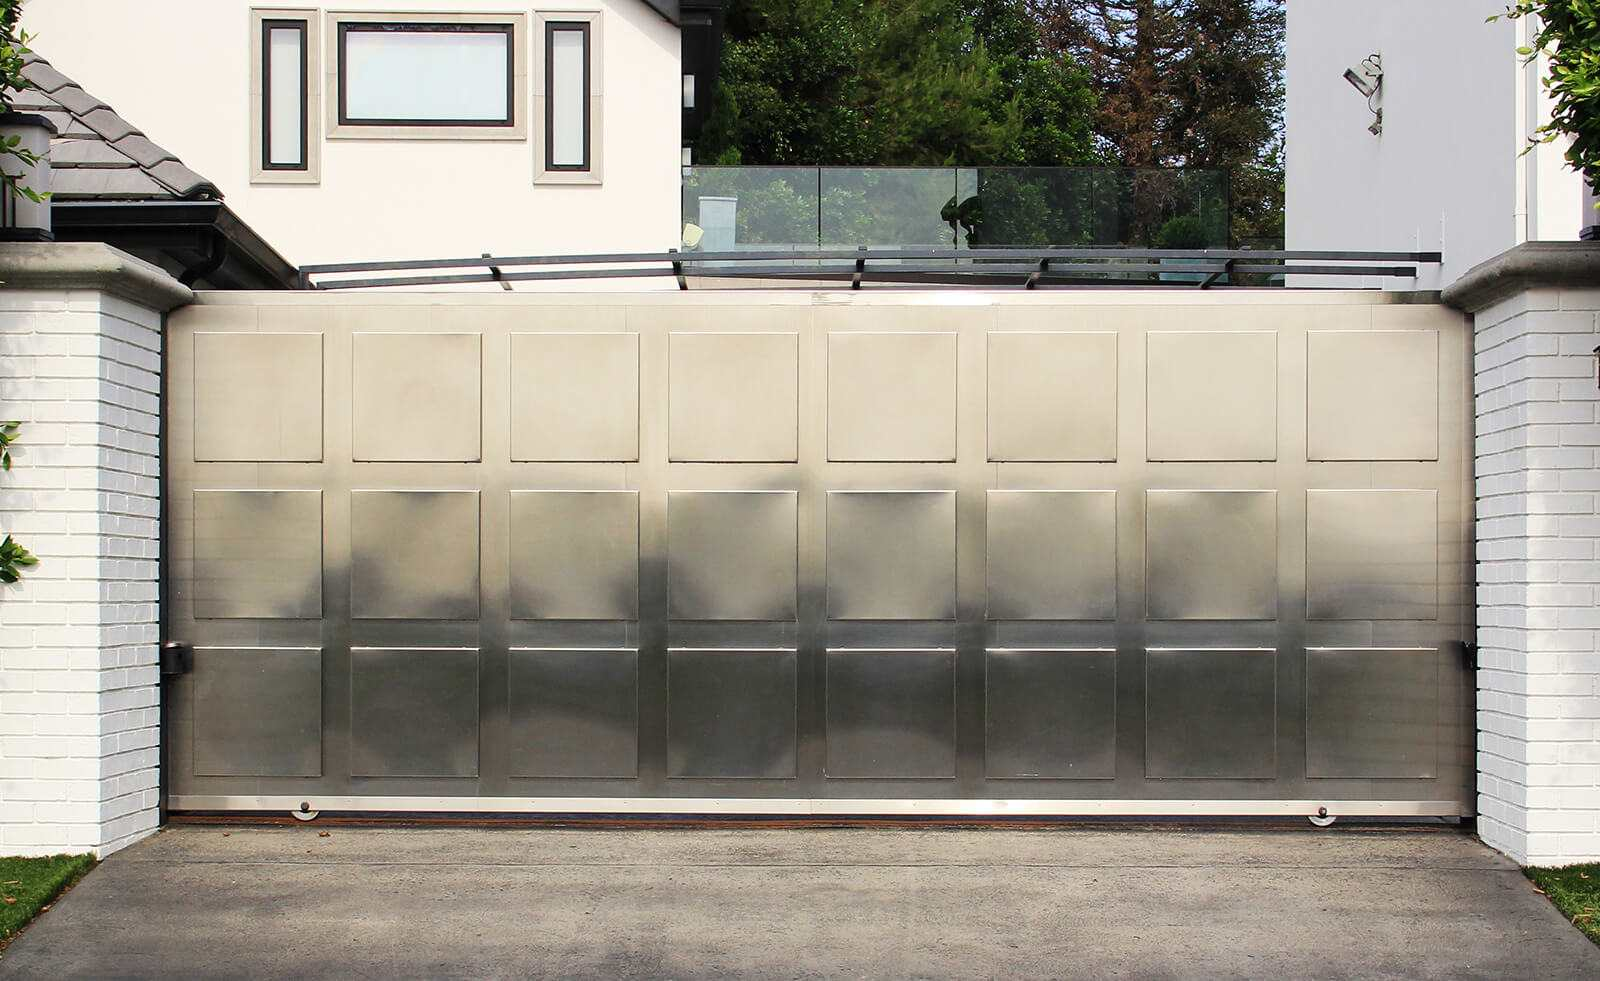 Single slide auto gate in contemporary stainless steel with stainless medallions